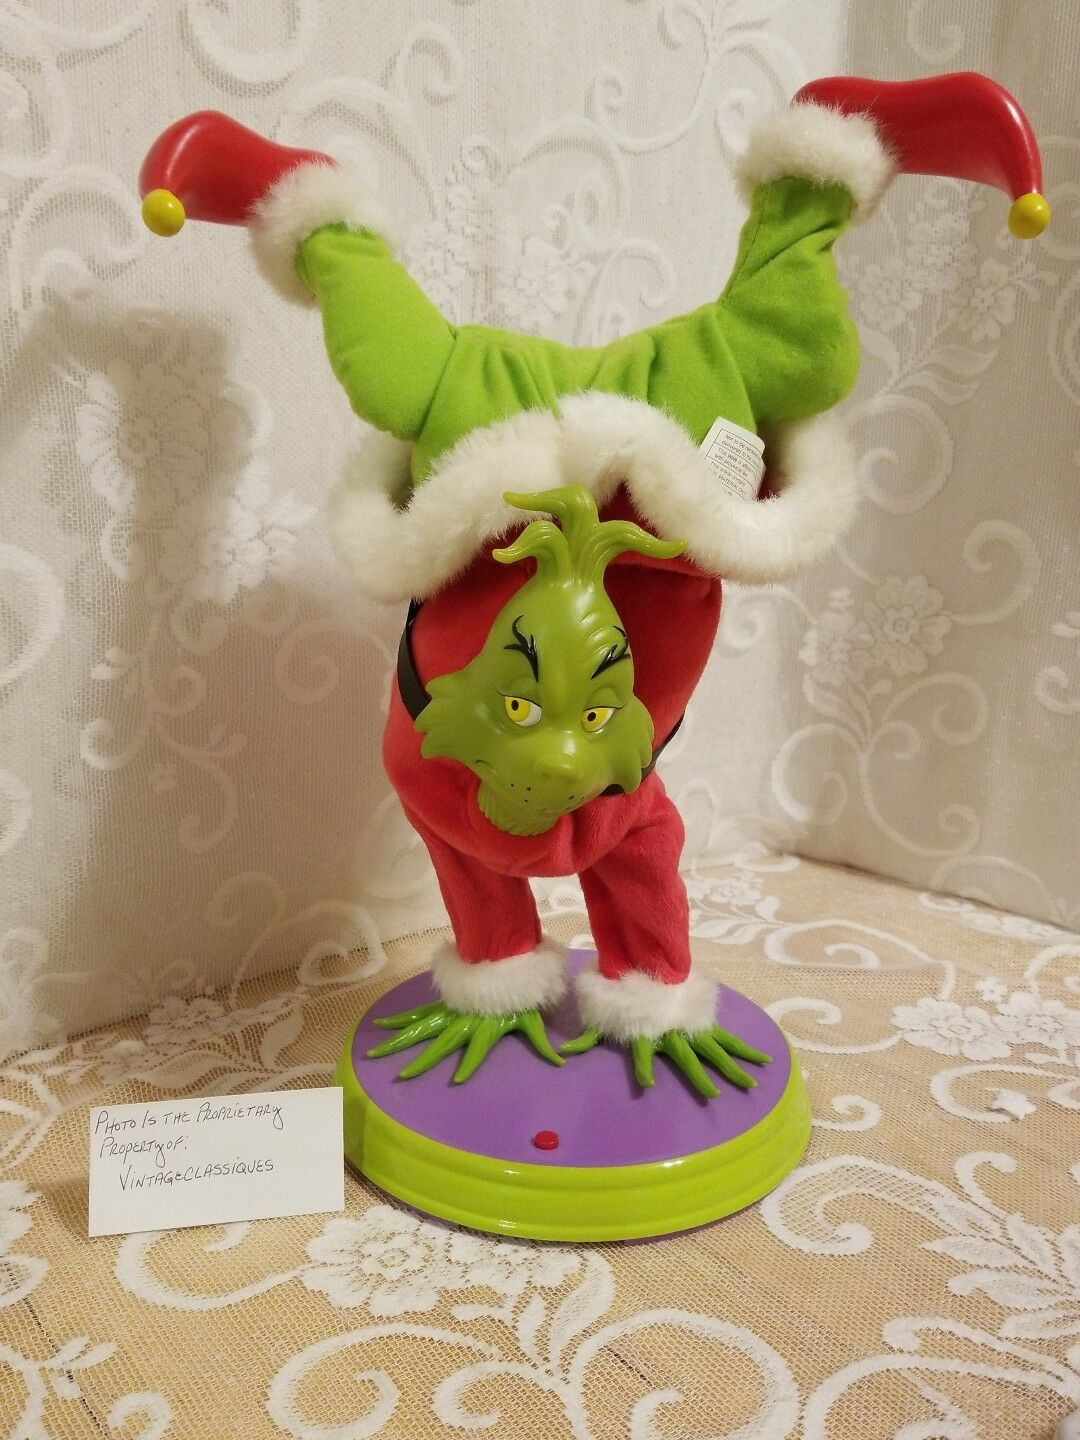 The Grinch Who Stole Christmas Hand Stand Grinch 2000 Gemmy PLEASE READ LISTING